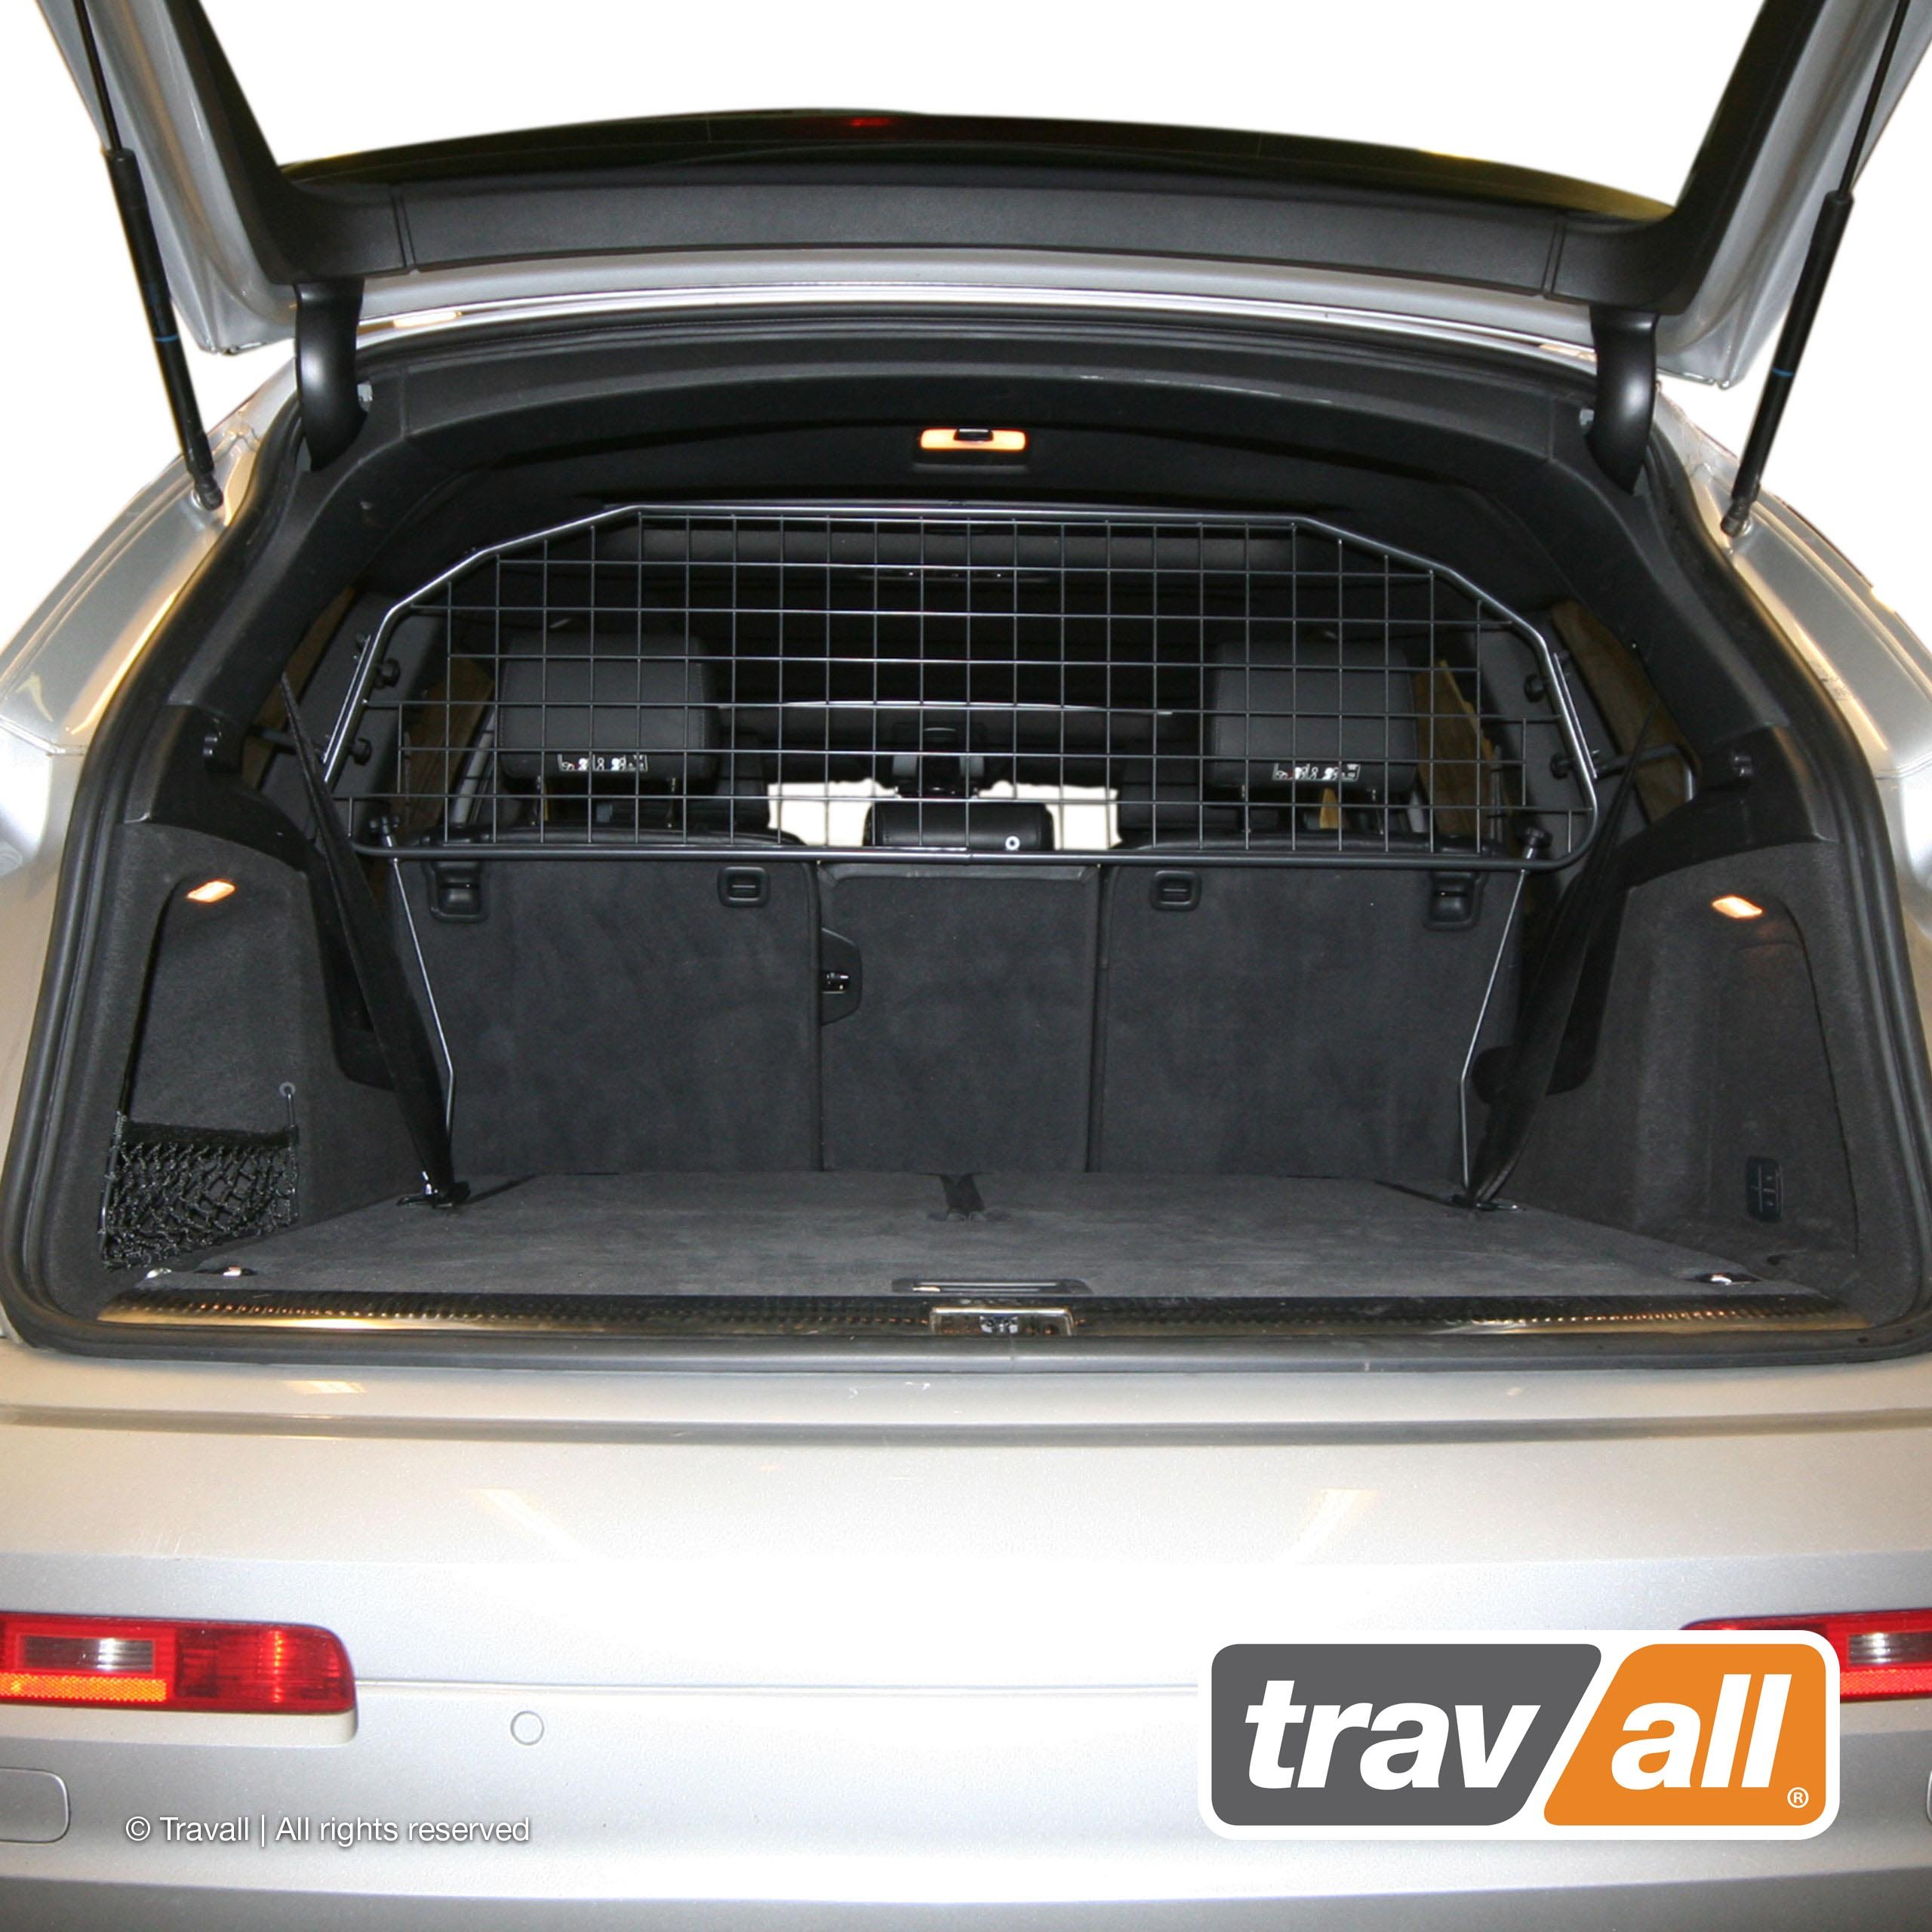 Travall Guard Compatible with Audi Q7 (2005-2015) TDG1354 - Rattle-Free Steel Pet Barrier by Travall